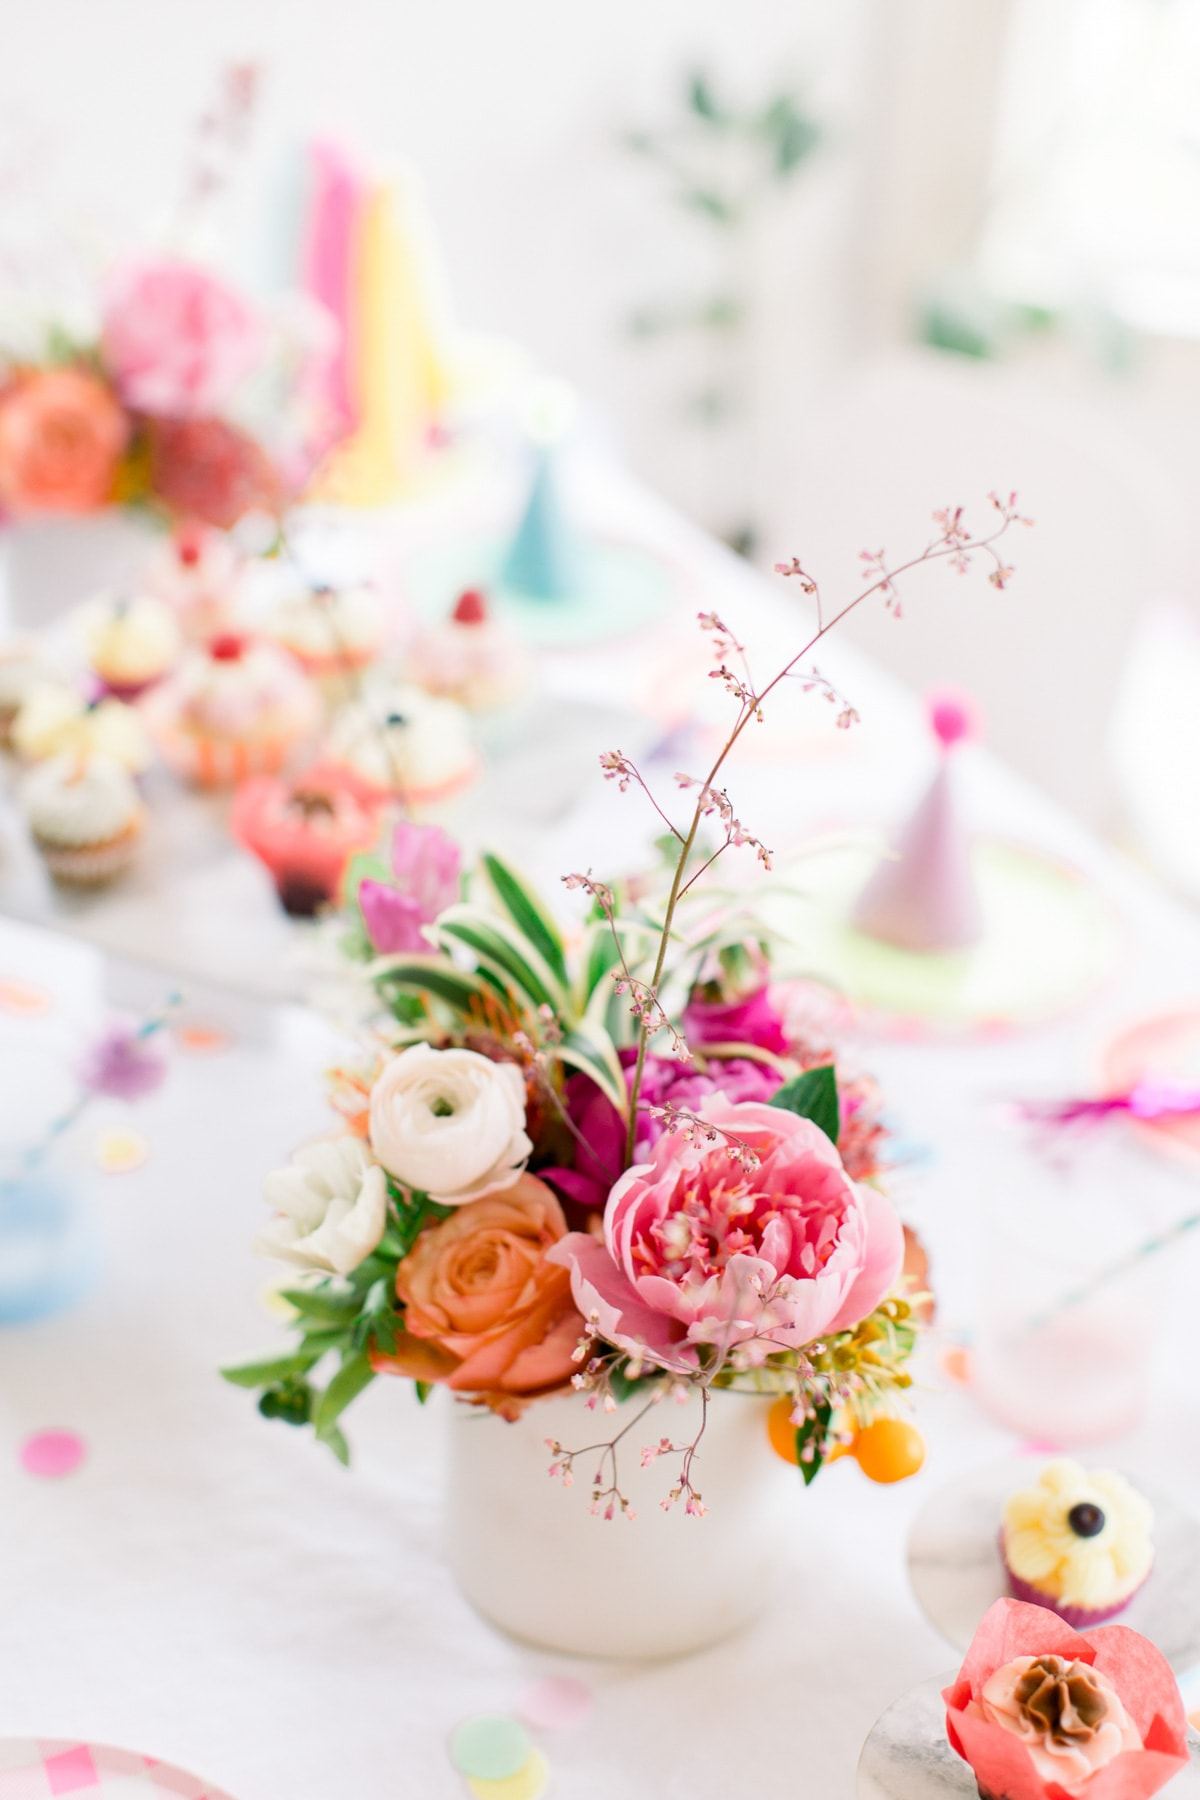 A Colorful Pom Pom Birthday Party with Shop Leo by top Houston lifestyle blogger Ashley Rose of Sugar & Cloth